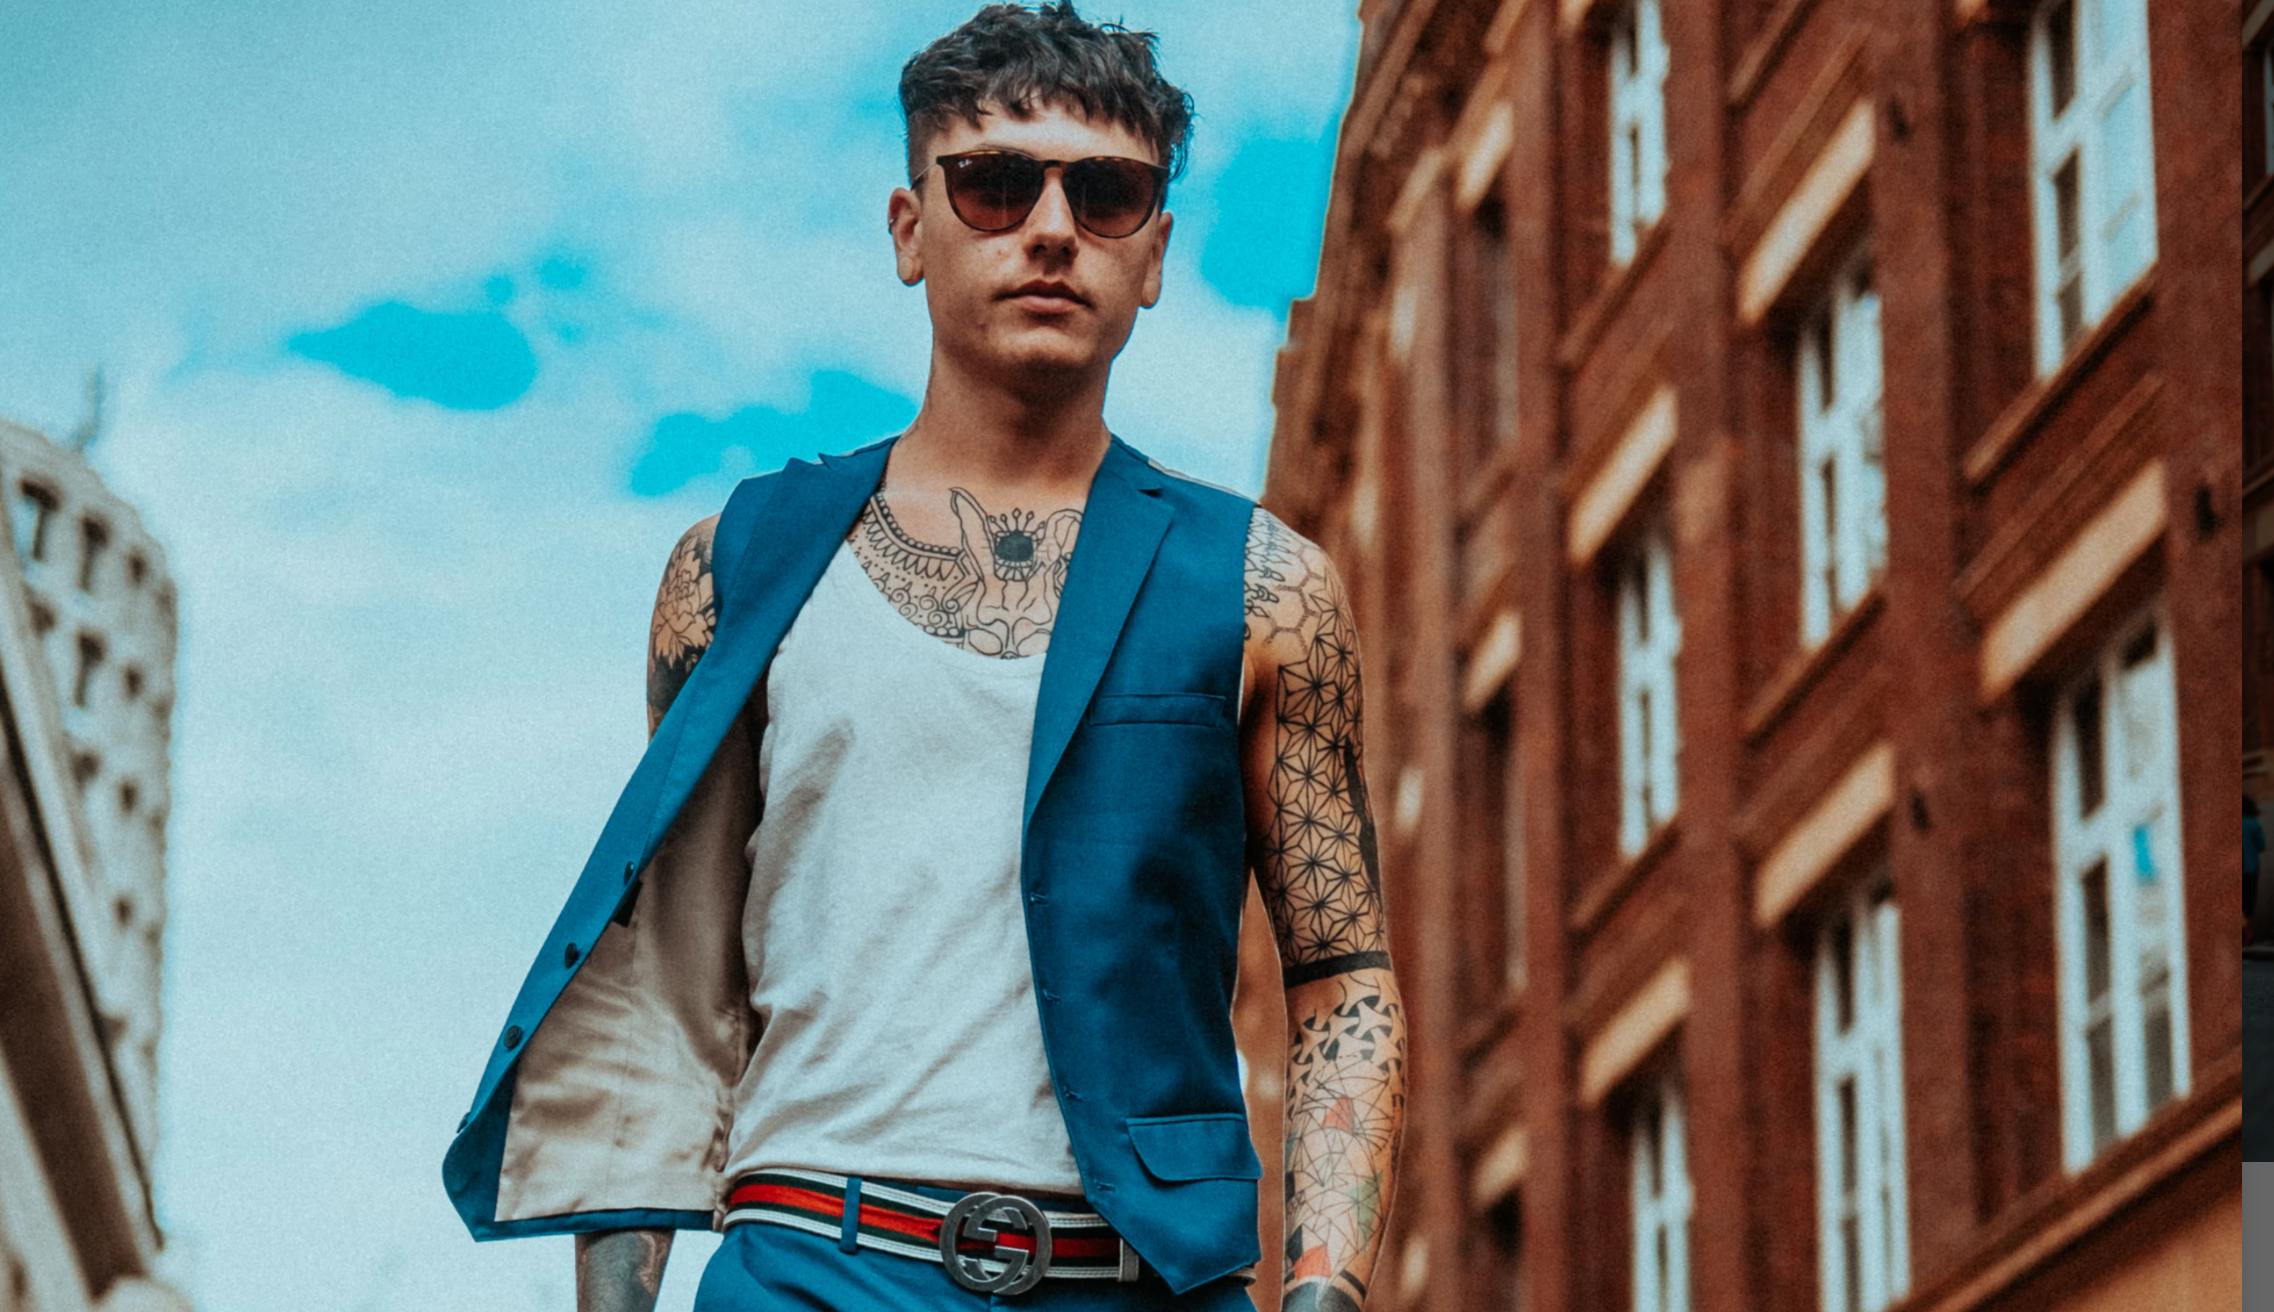 A tattooed man in a suit